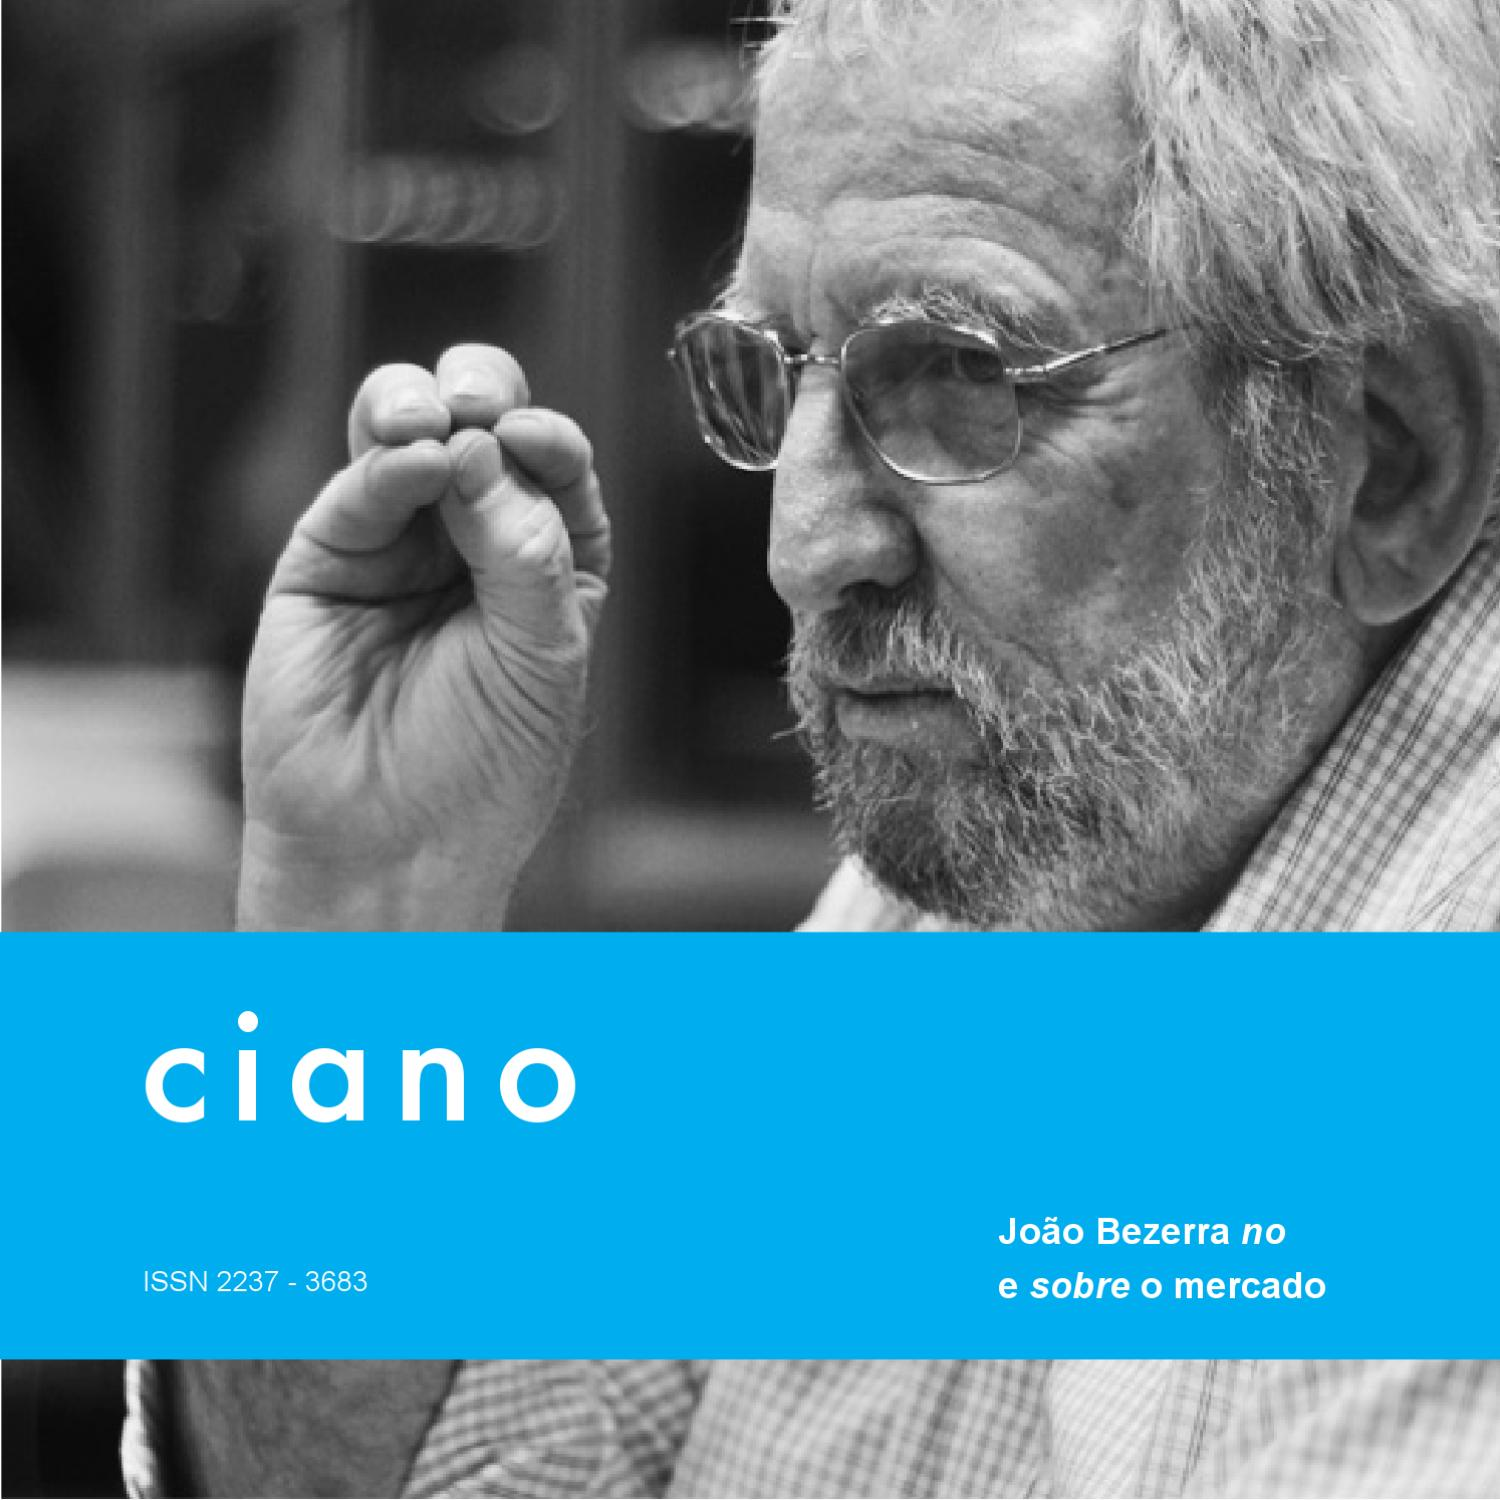 Revista Ciano - vol.2, no.1, ano 2012 by Design Simples - issuu 45d02bc920